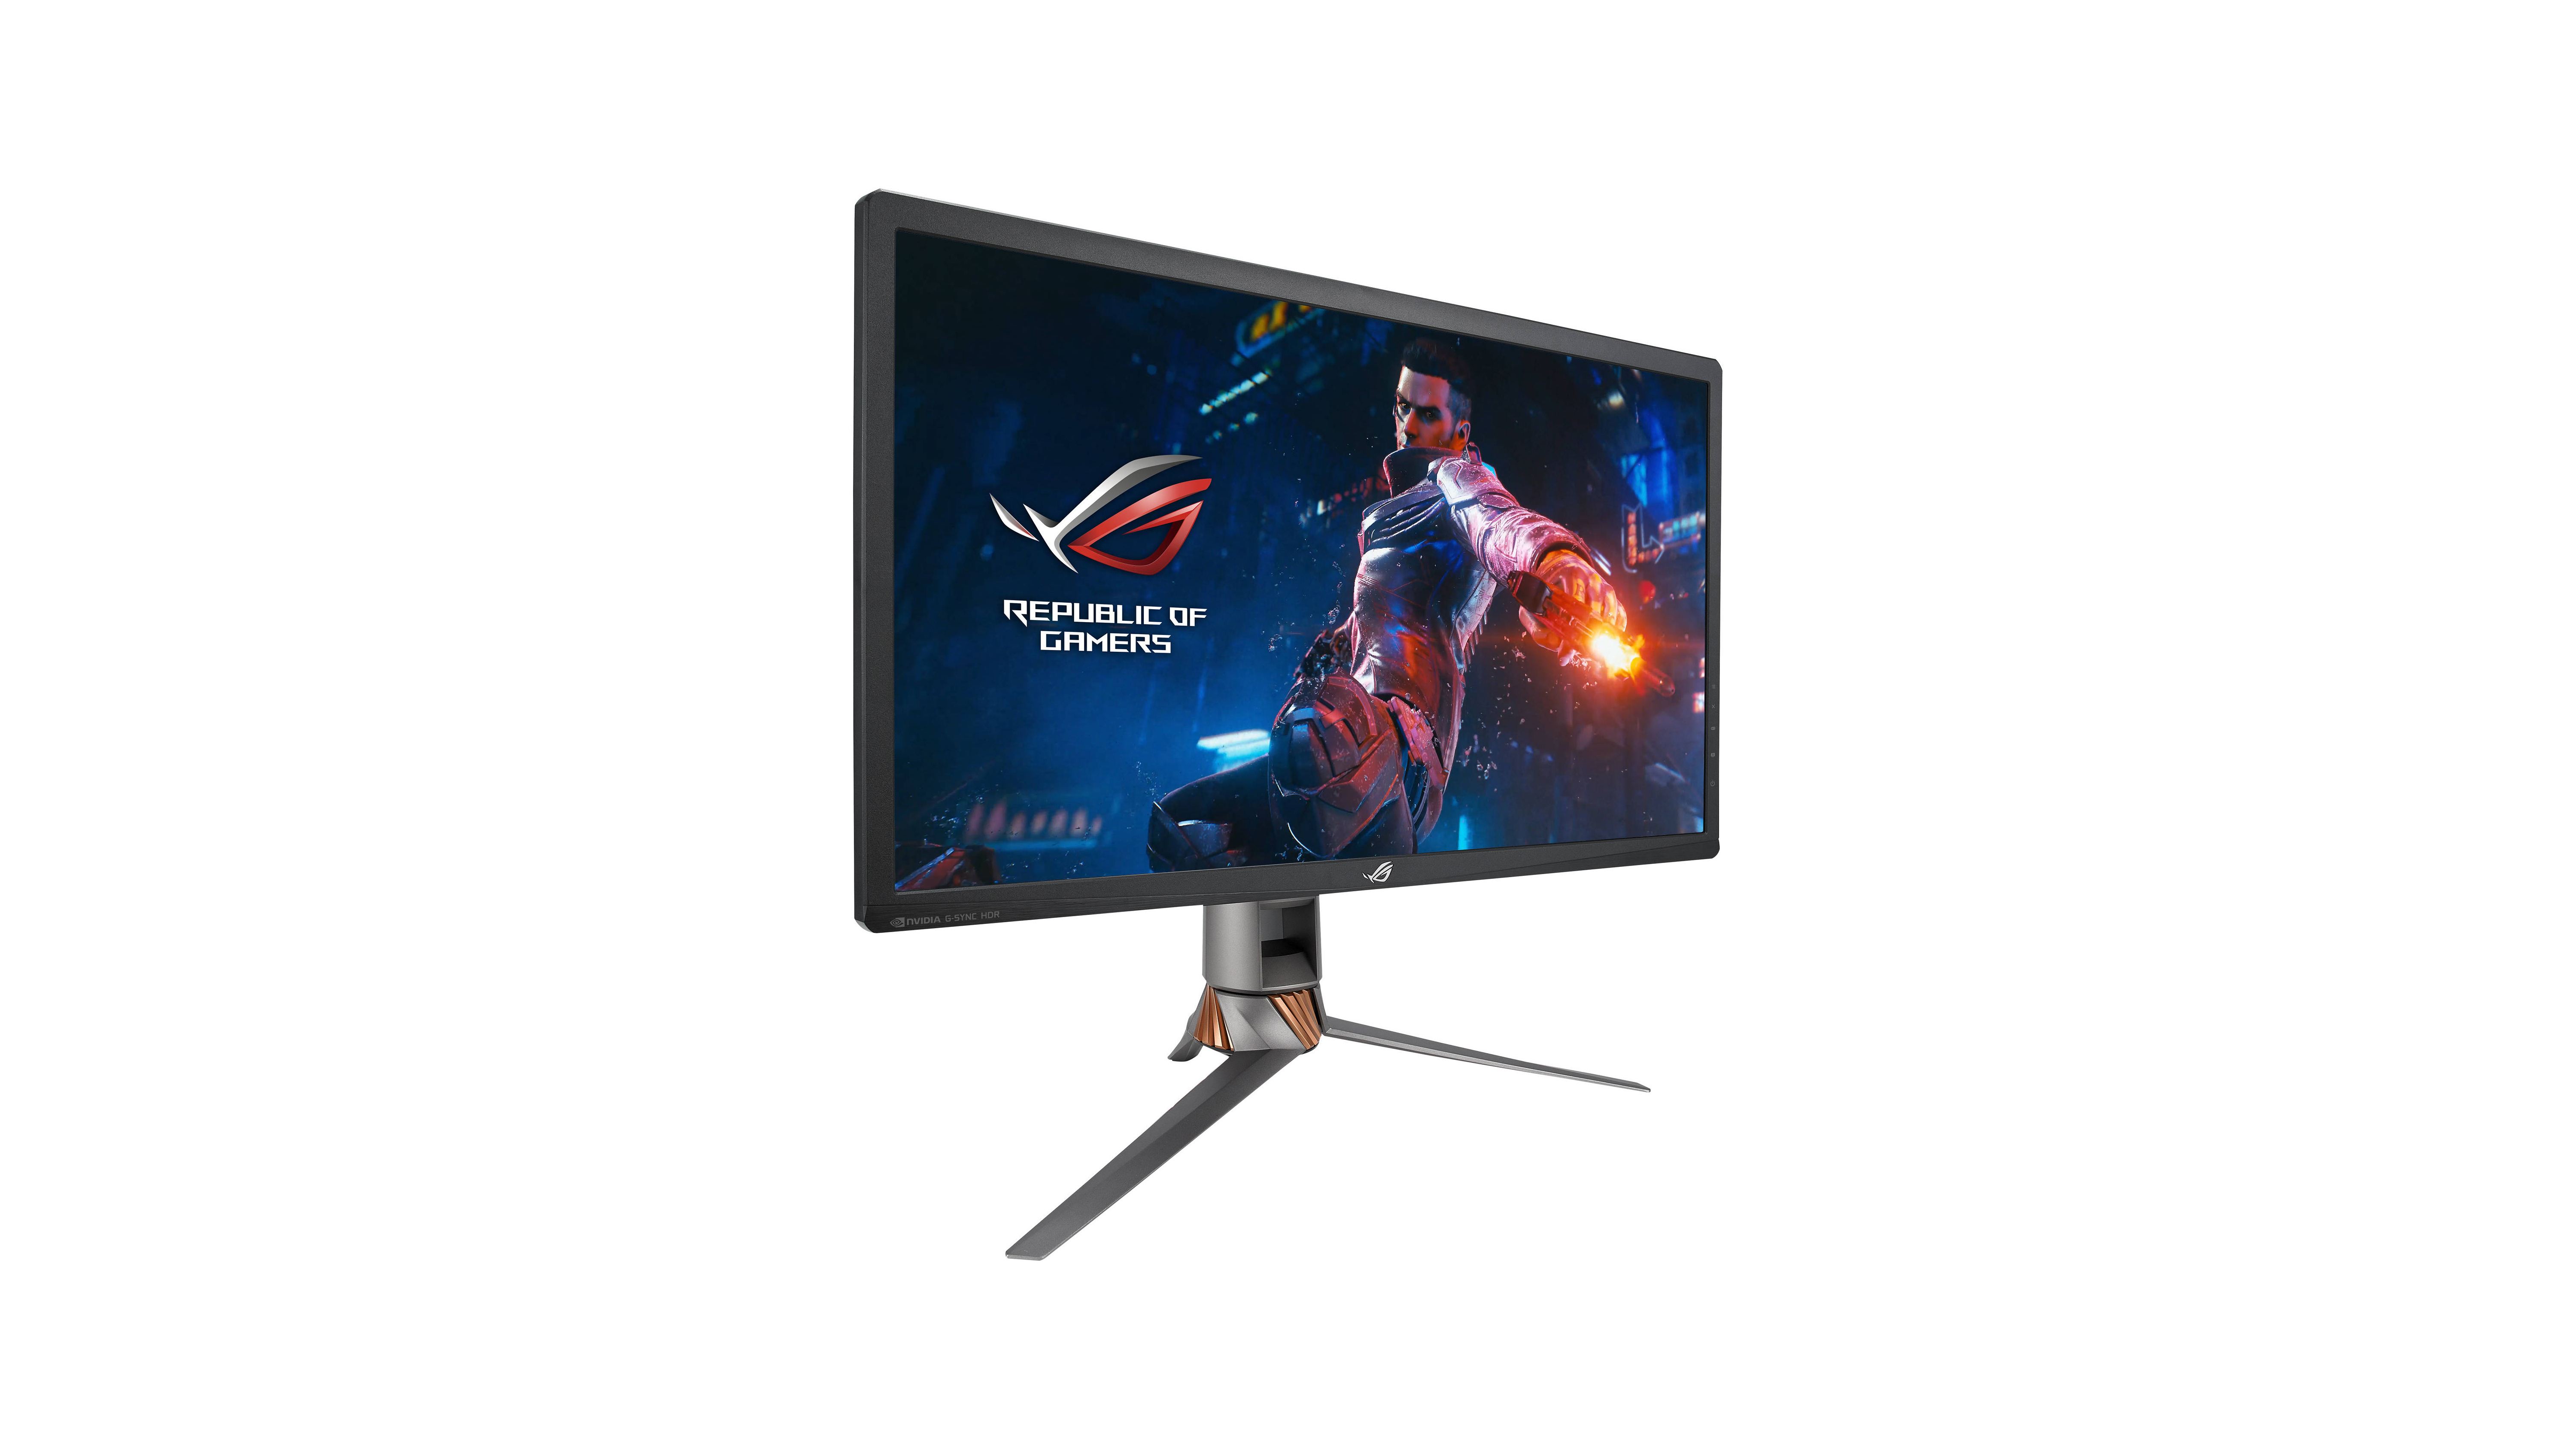 Asus ROG Swift PG27UQ